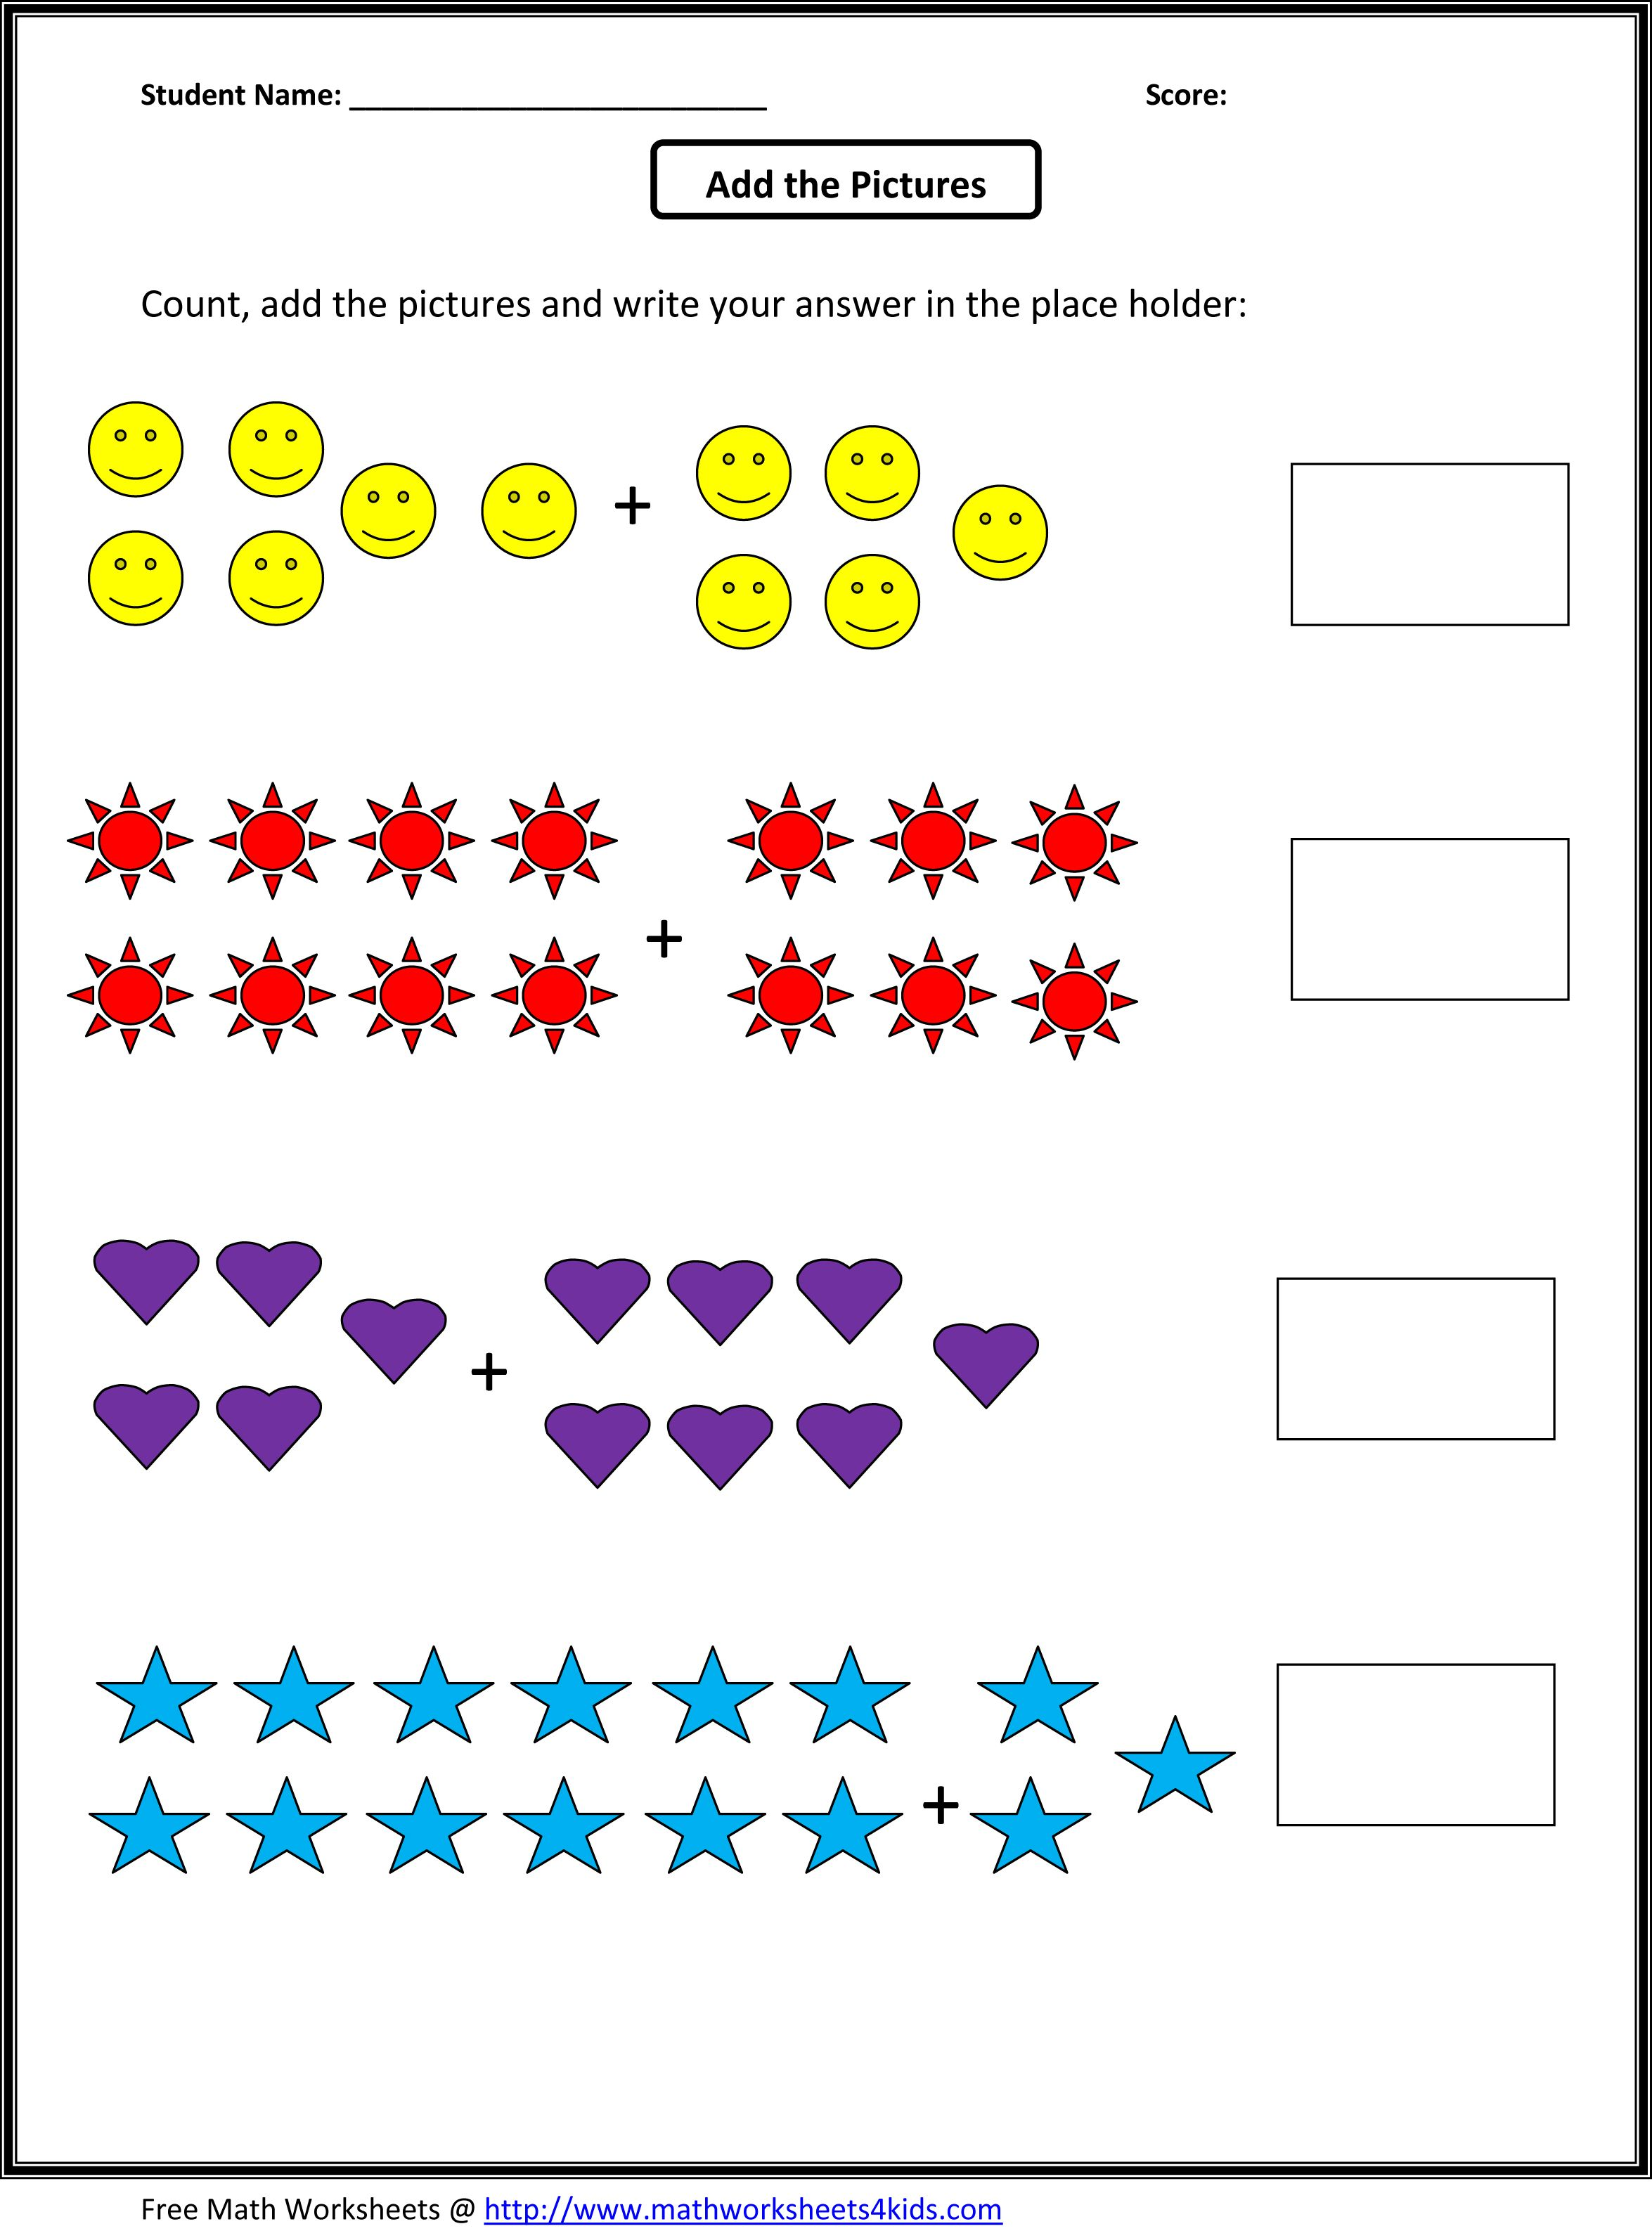 Aldiablosus  Pretty Worksheet For Math Grade   Coffemix With Gorgeous  Images About School On Pinterest  Mental Maths Worksheets  With Cool Pre K Matching Worksheets Also Free Printable Middle School Math Worksheets In Addition Handwriting Letter Worksheets And Printable Rhyming Worksheets As Well As Social Studies Worksheets High School Additionally Cause And Effect Worksheet Rd Grade From Coffemixcom With Aldiablosus  Gorgeous Worksheet For Math Grade   Coffemix With Cool  Images About School On Pinterest  Mental Maths Worksheets  And Pretty Pre K Matching Worksheets Also Free Printable Middle School Math Worksheets In Addition Handwriting Letter Worksheets From Coffemixcom